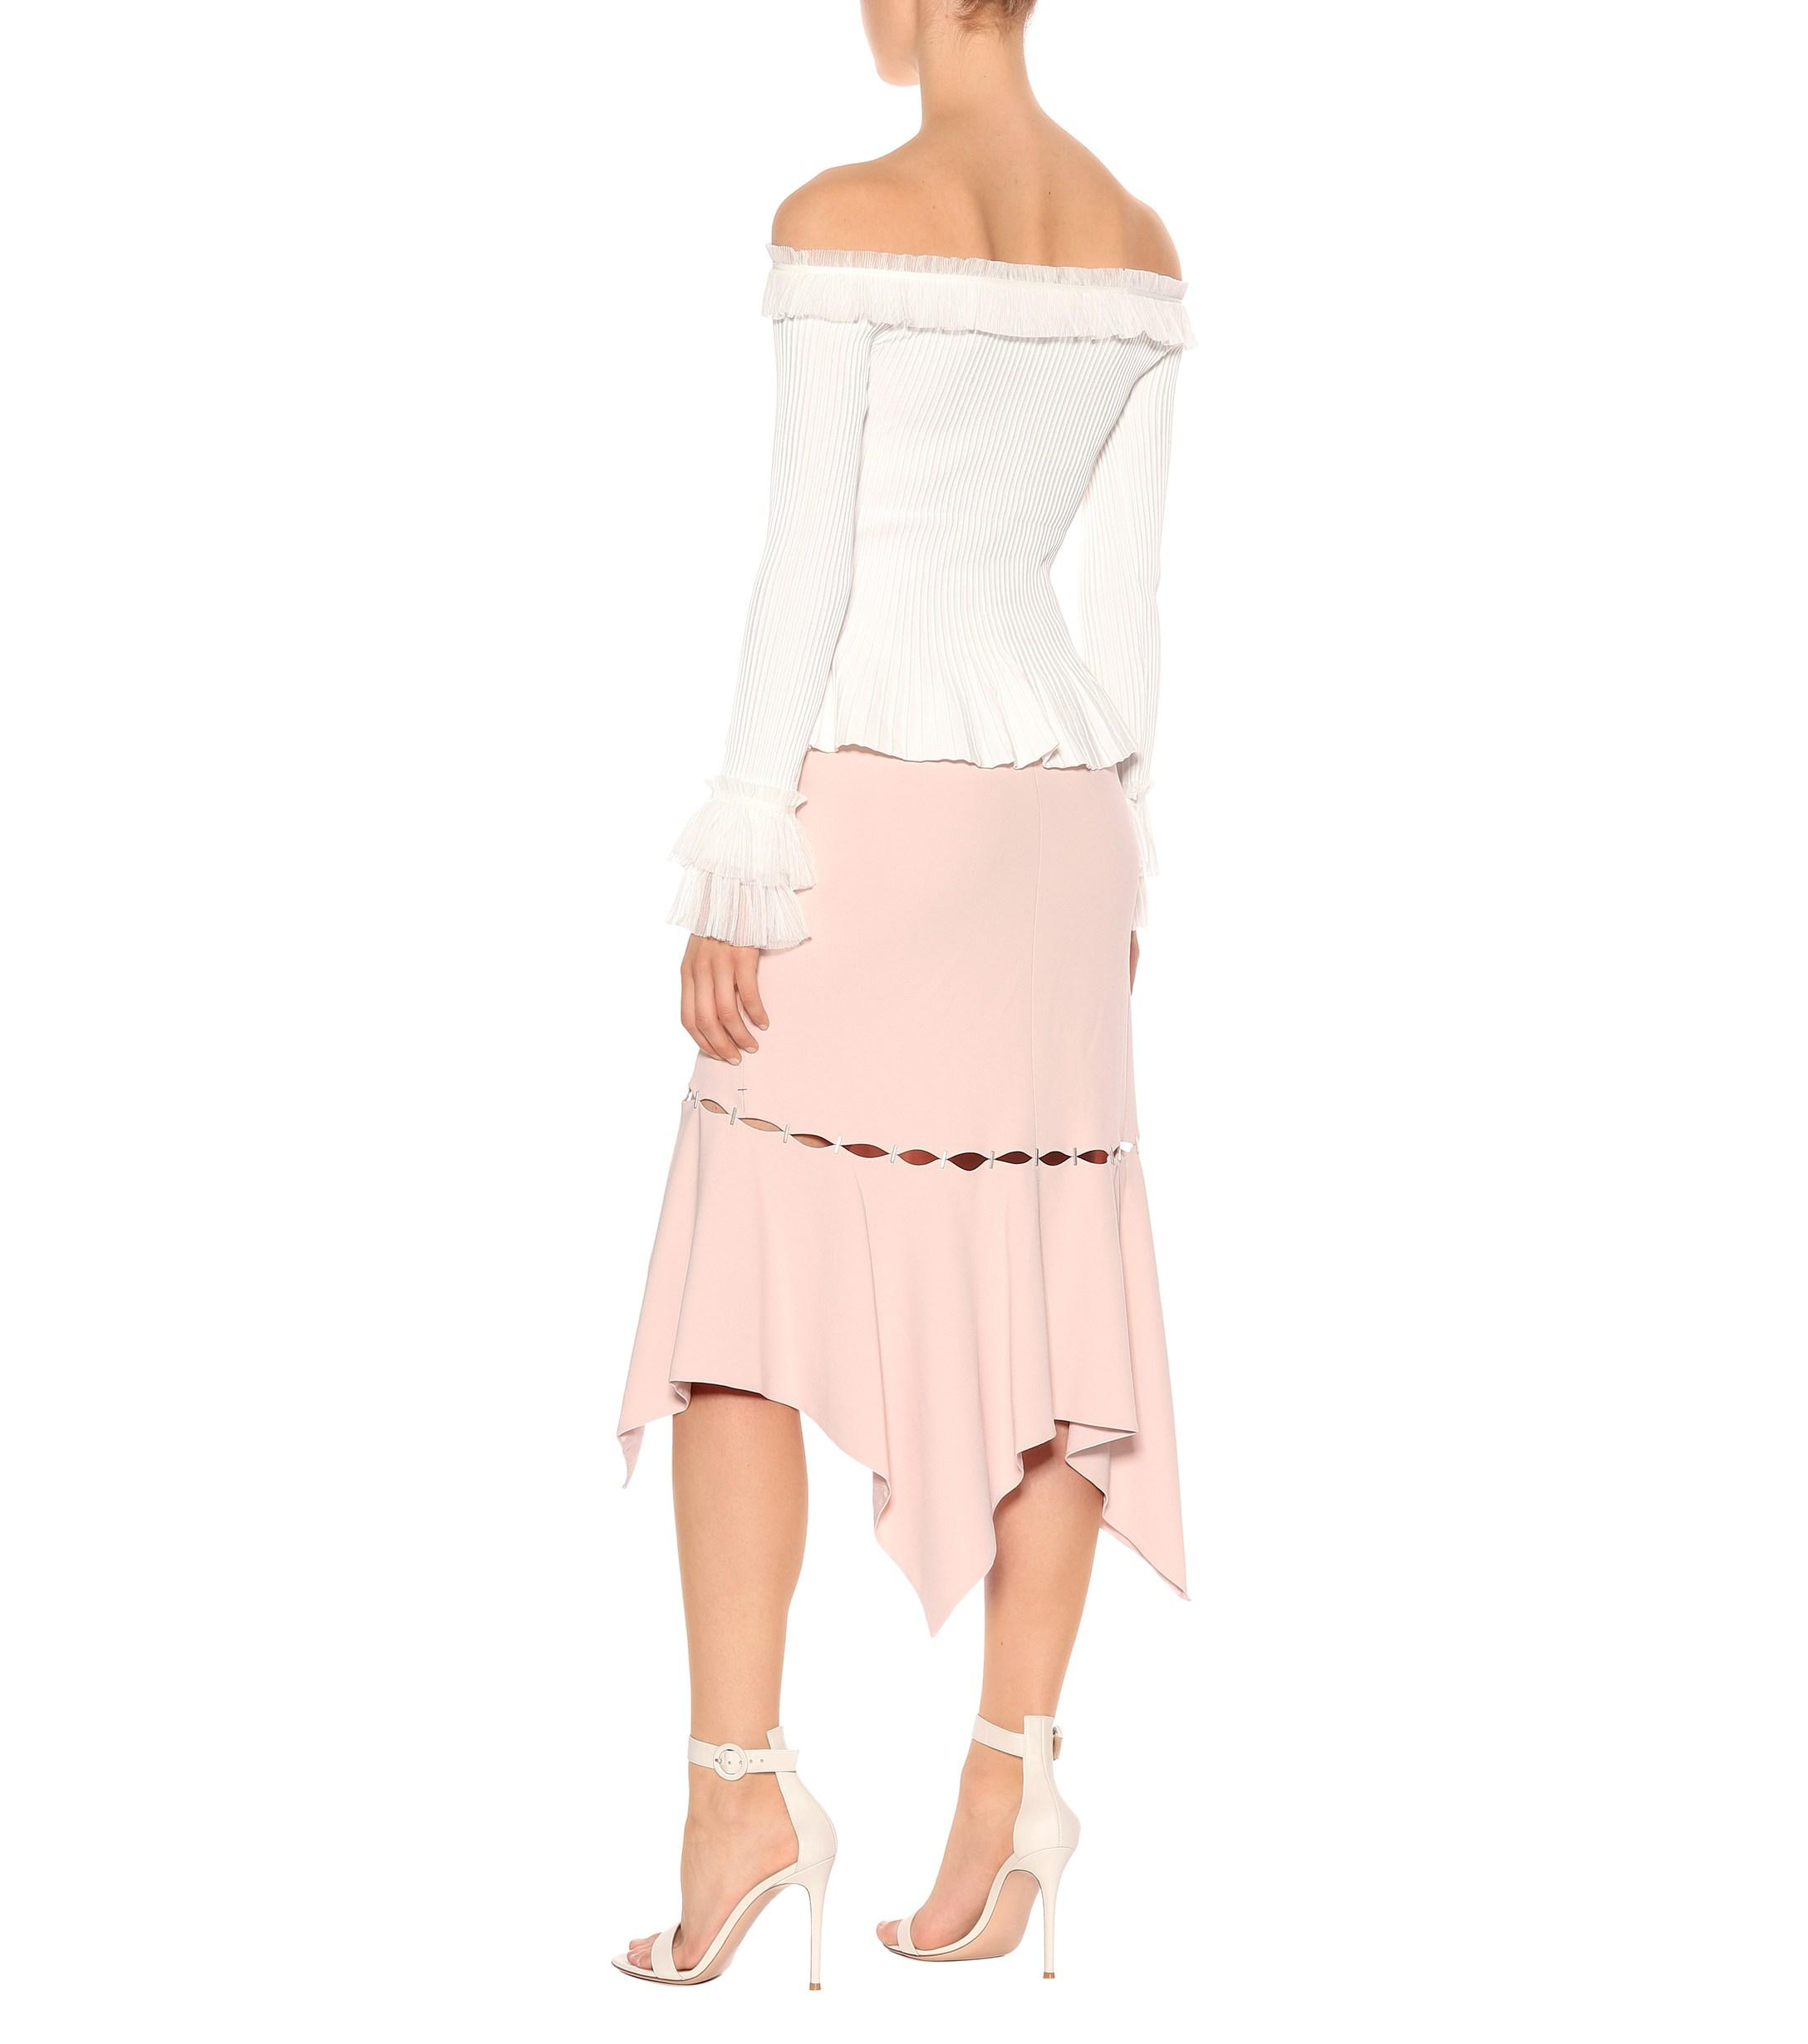 351d5fb957a102 Jonathan Simkhai - White Ruffled Off-the-shoulder Top - Lyst. View  fullscreen